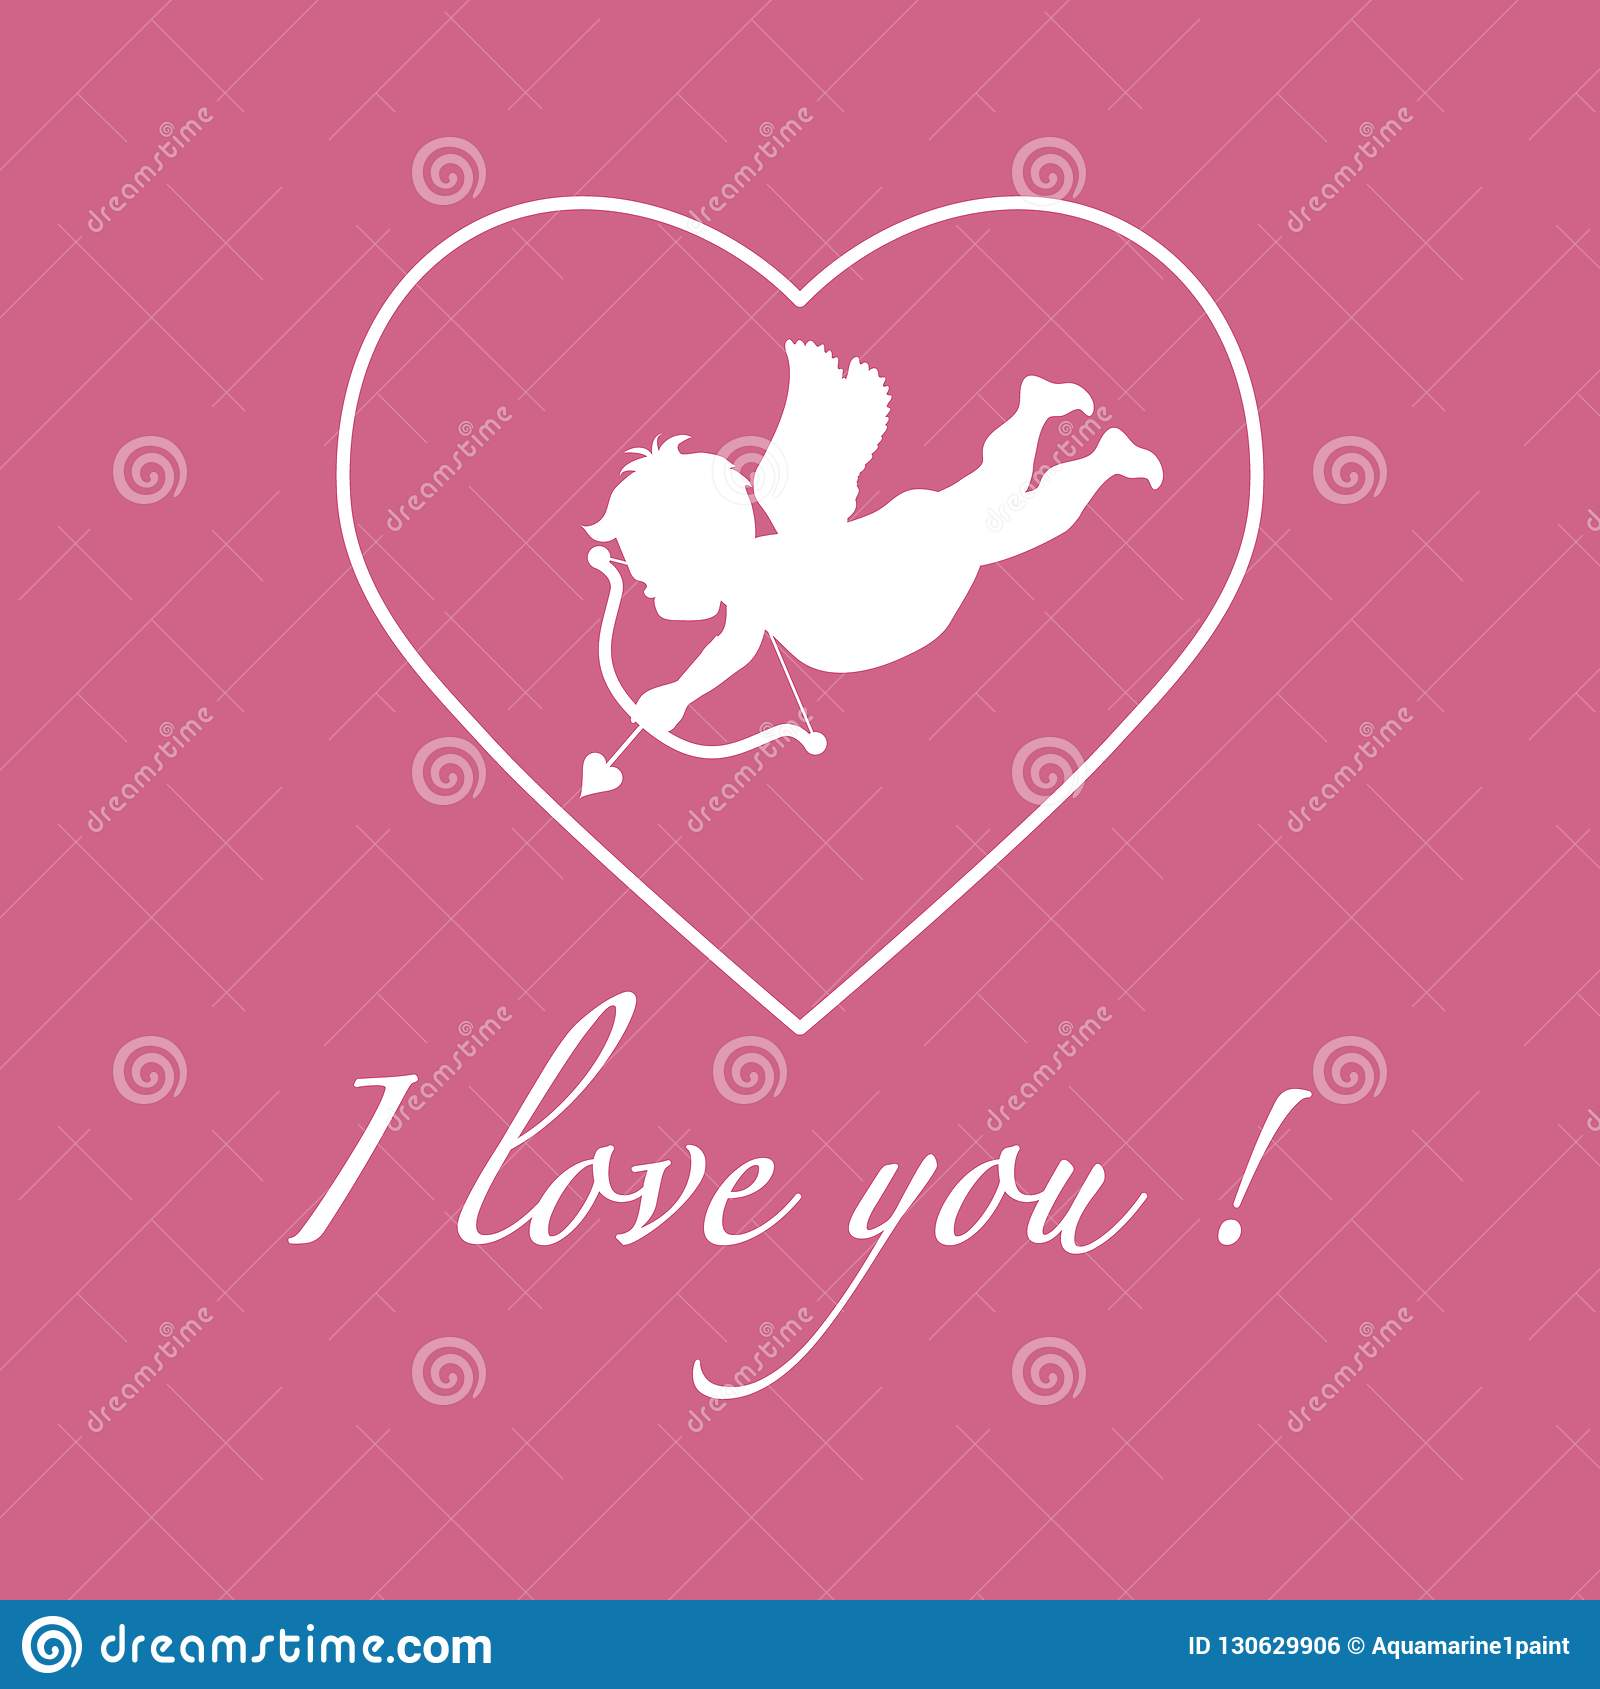 Greeting Card With Cupid Archery  Valentine's Day  Stock